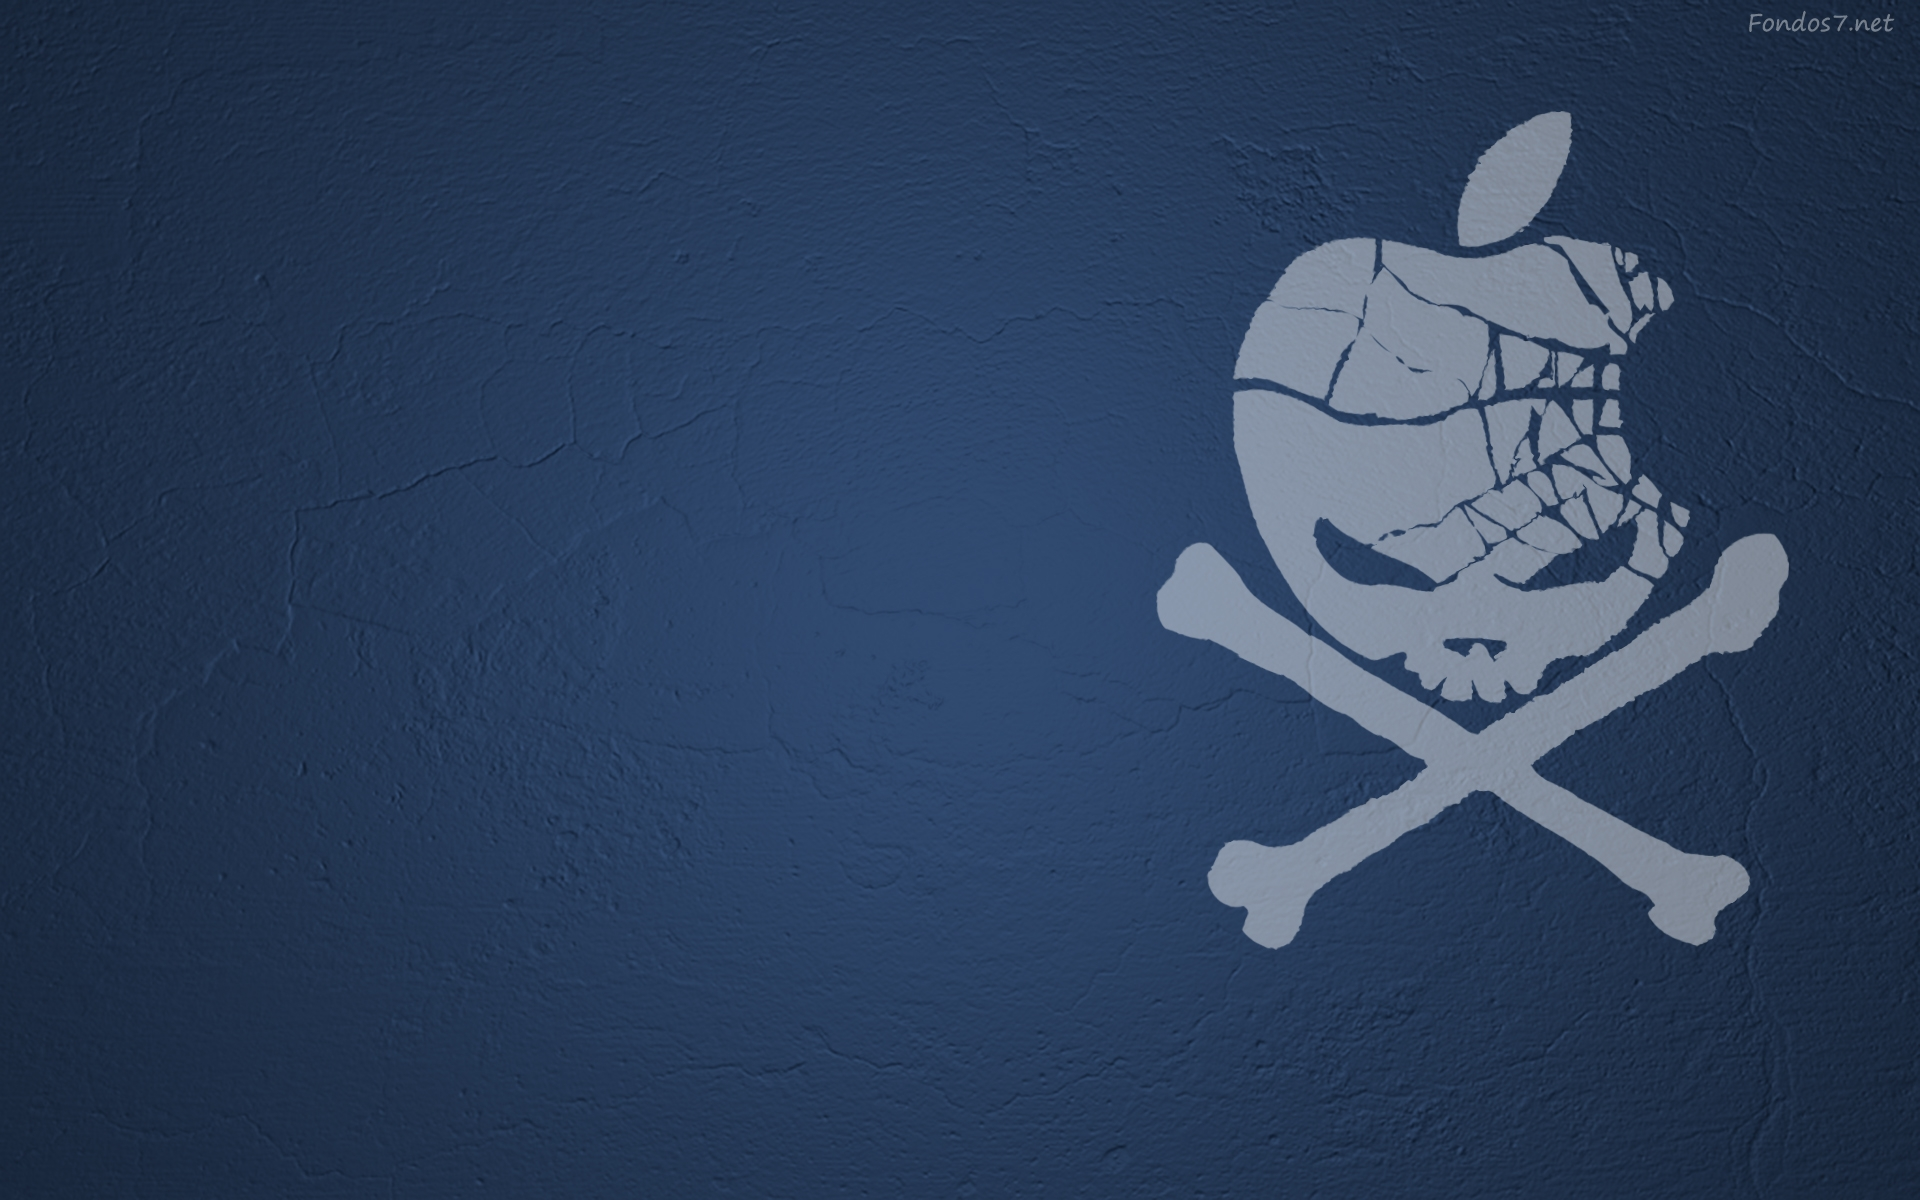 wallpapers 4k-hd Apple-alegorias.es (24)